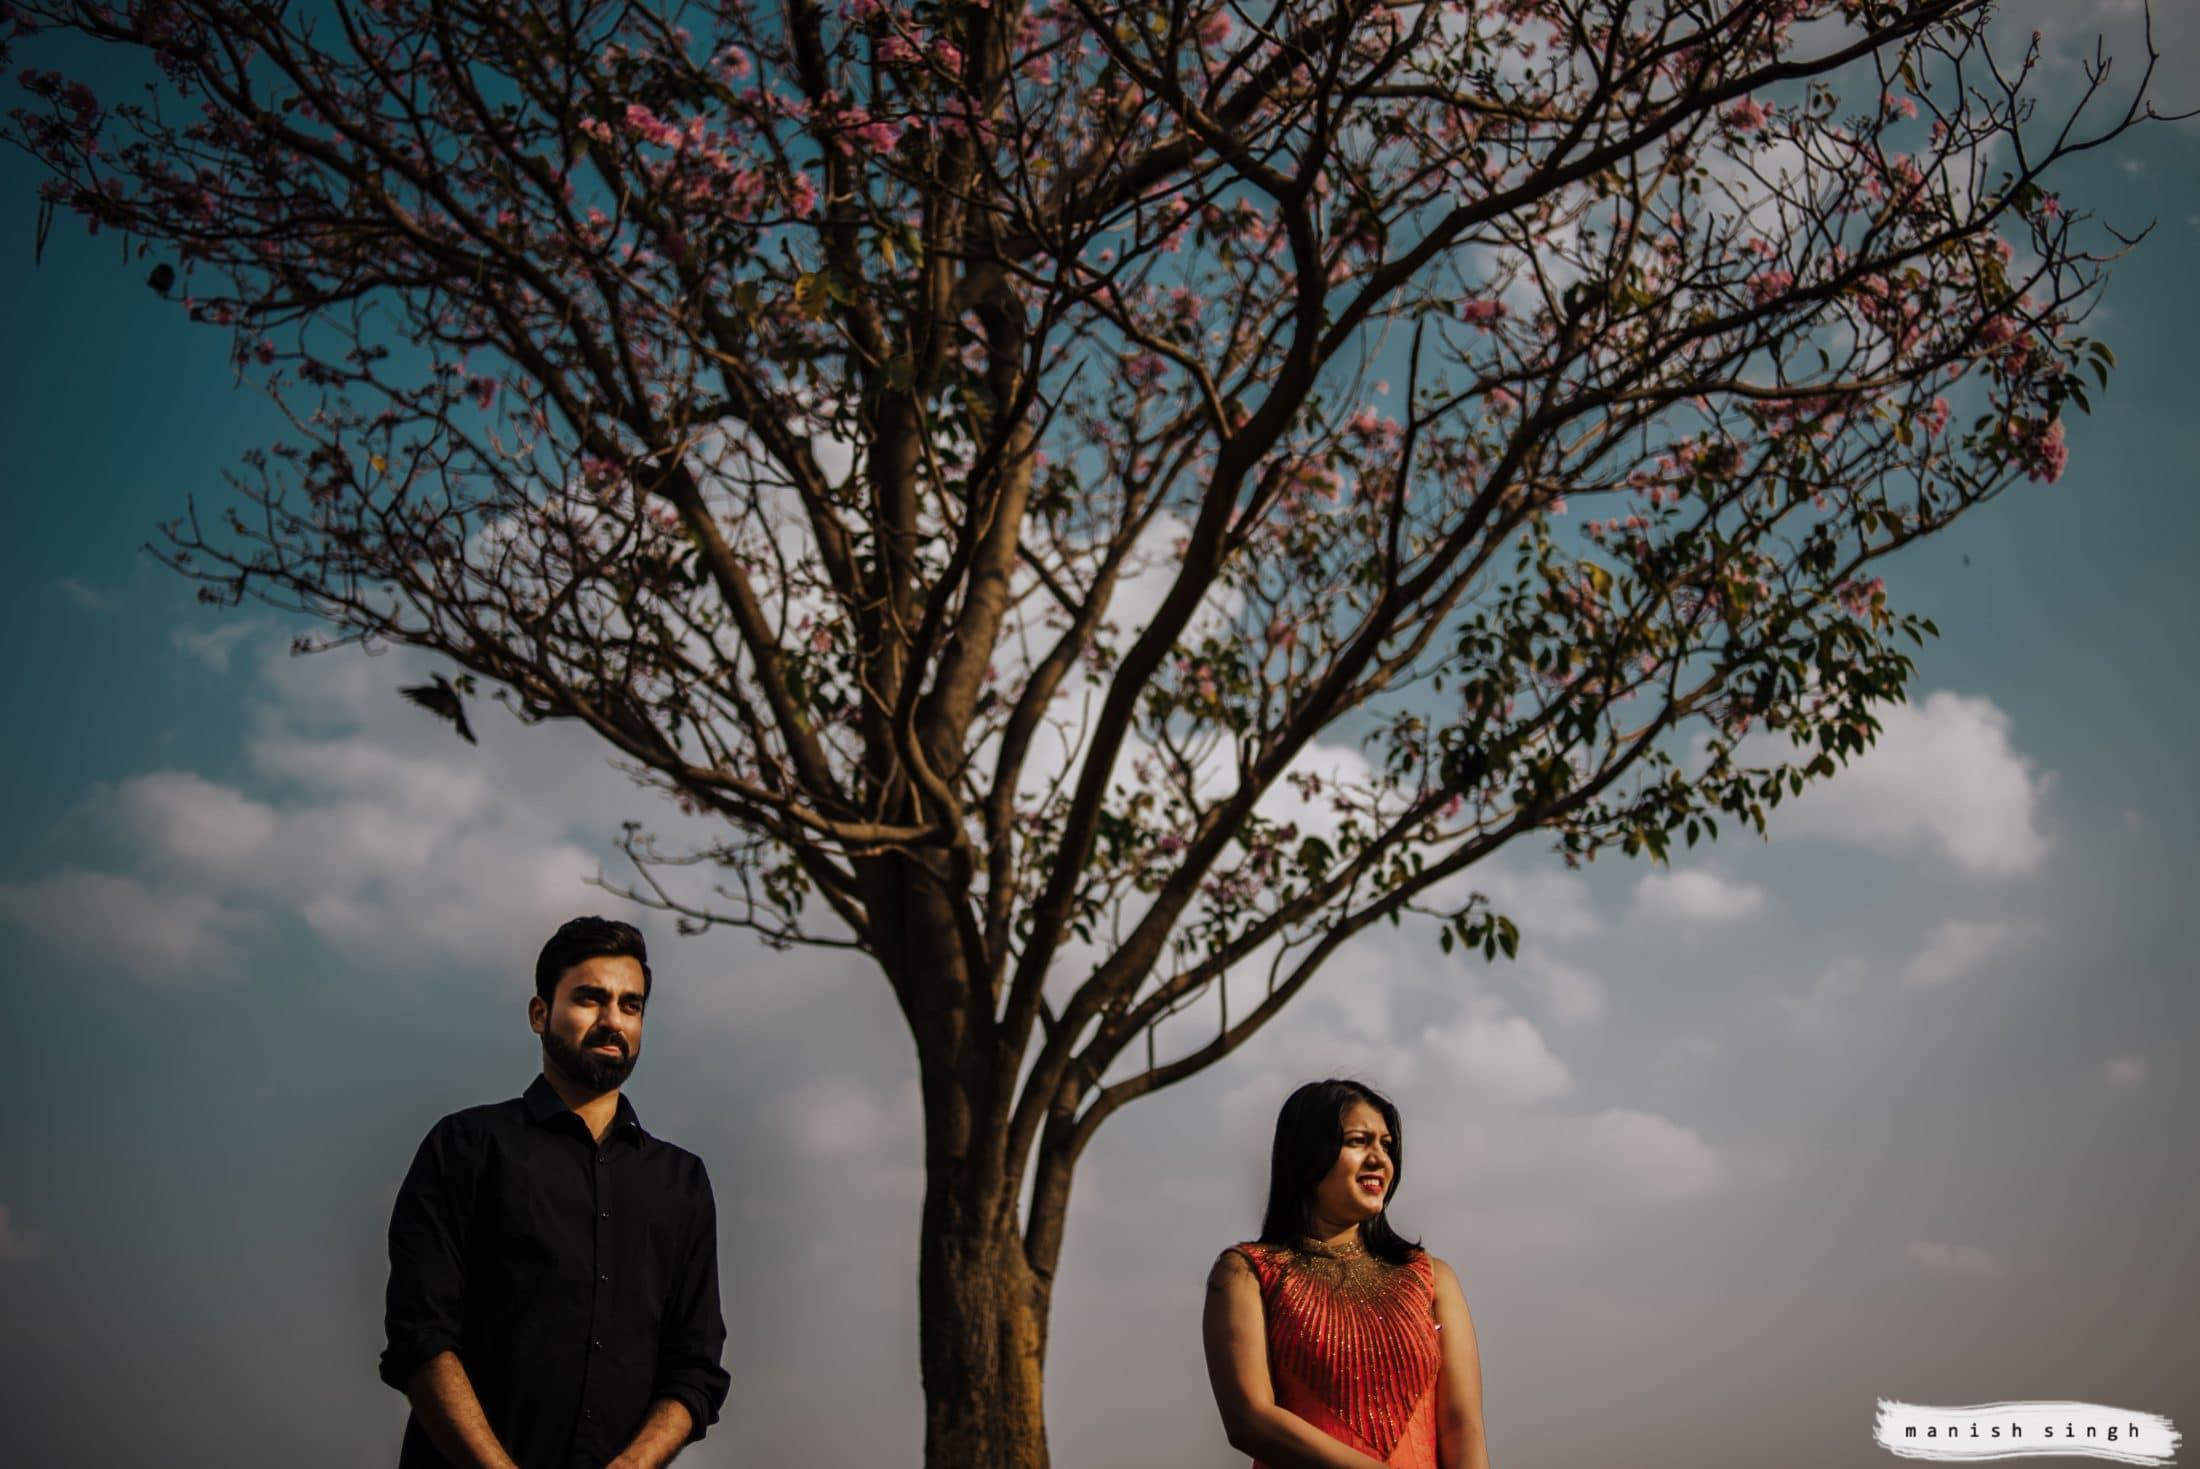 couple scenery photo with tree and sky bangalore